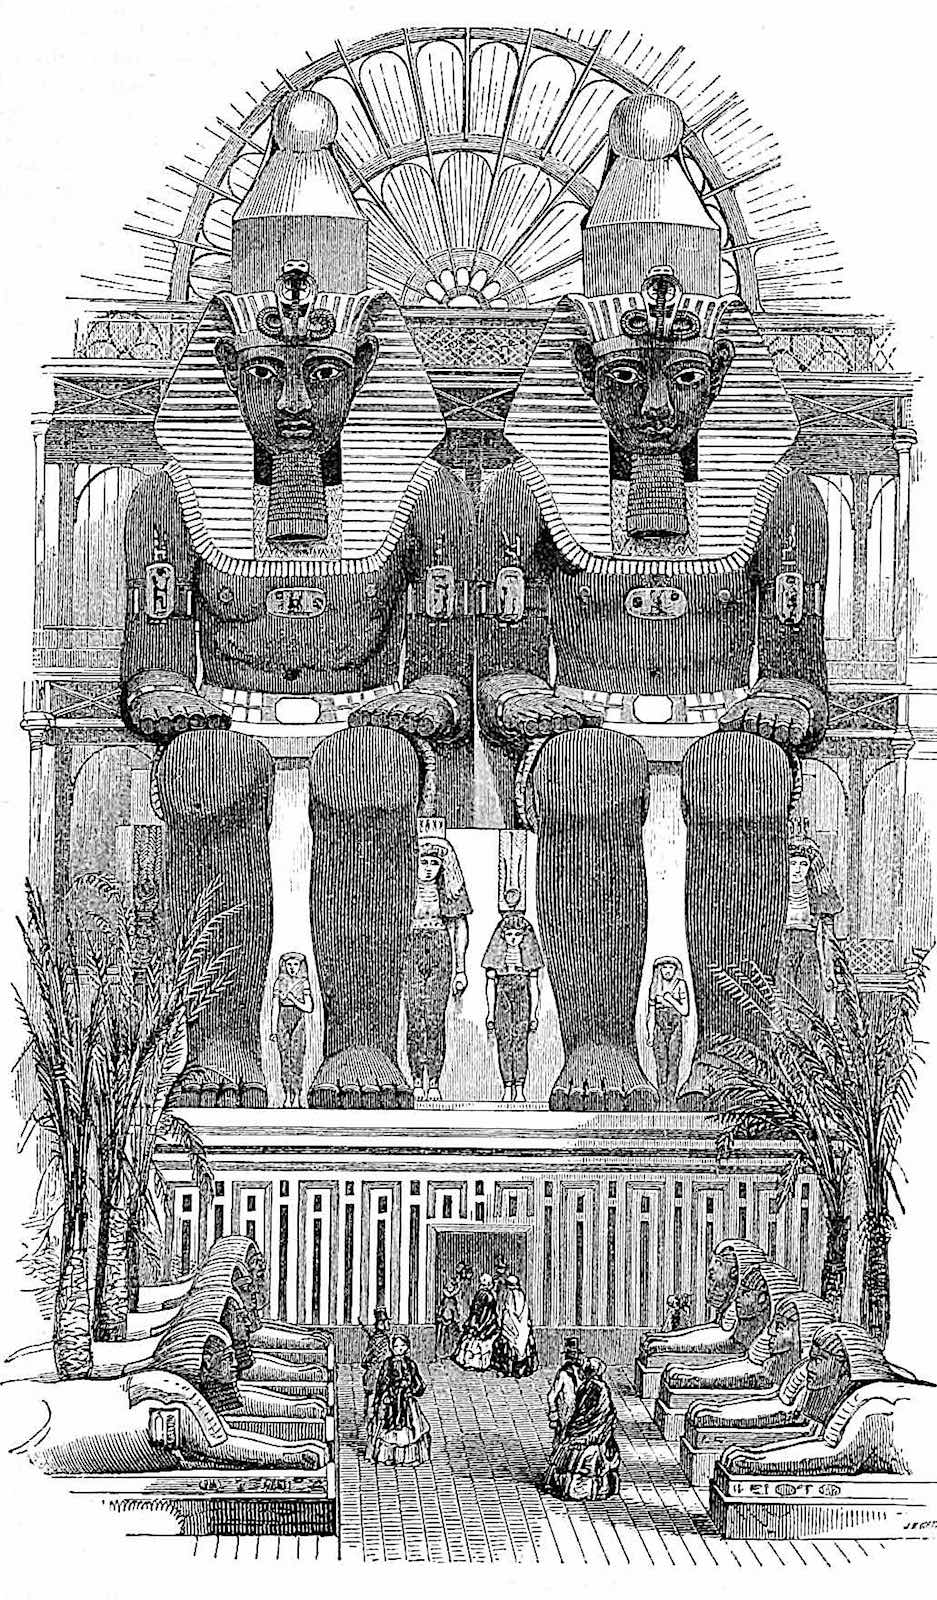 the Egyptian relics display at the 1851 Great Exhibition of London